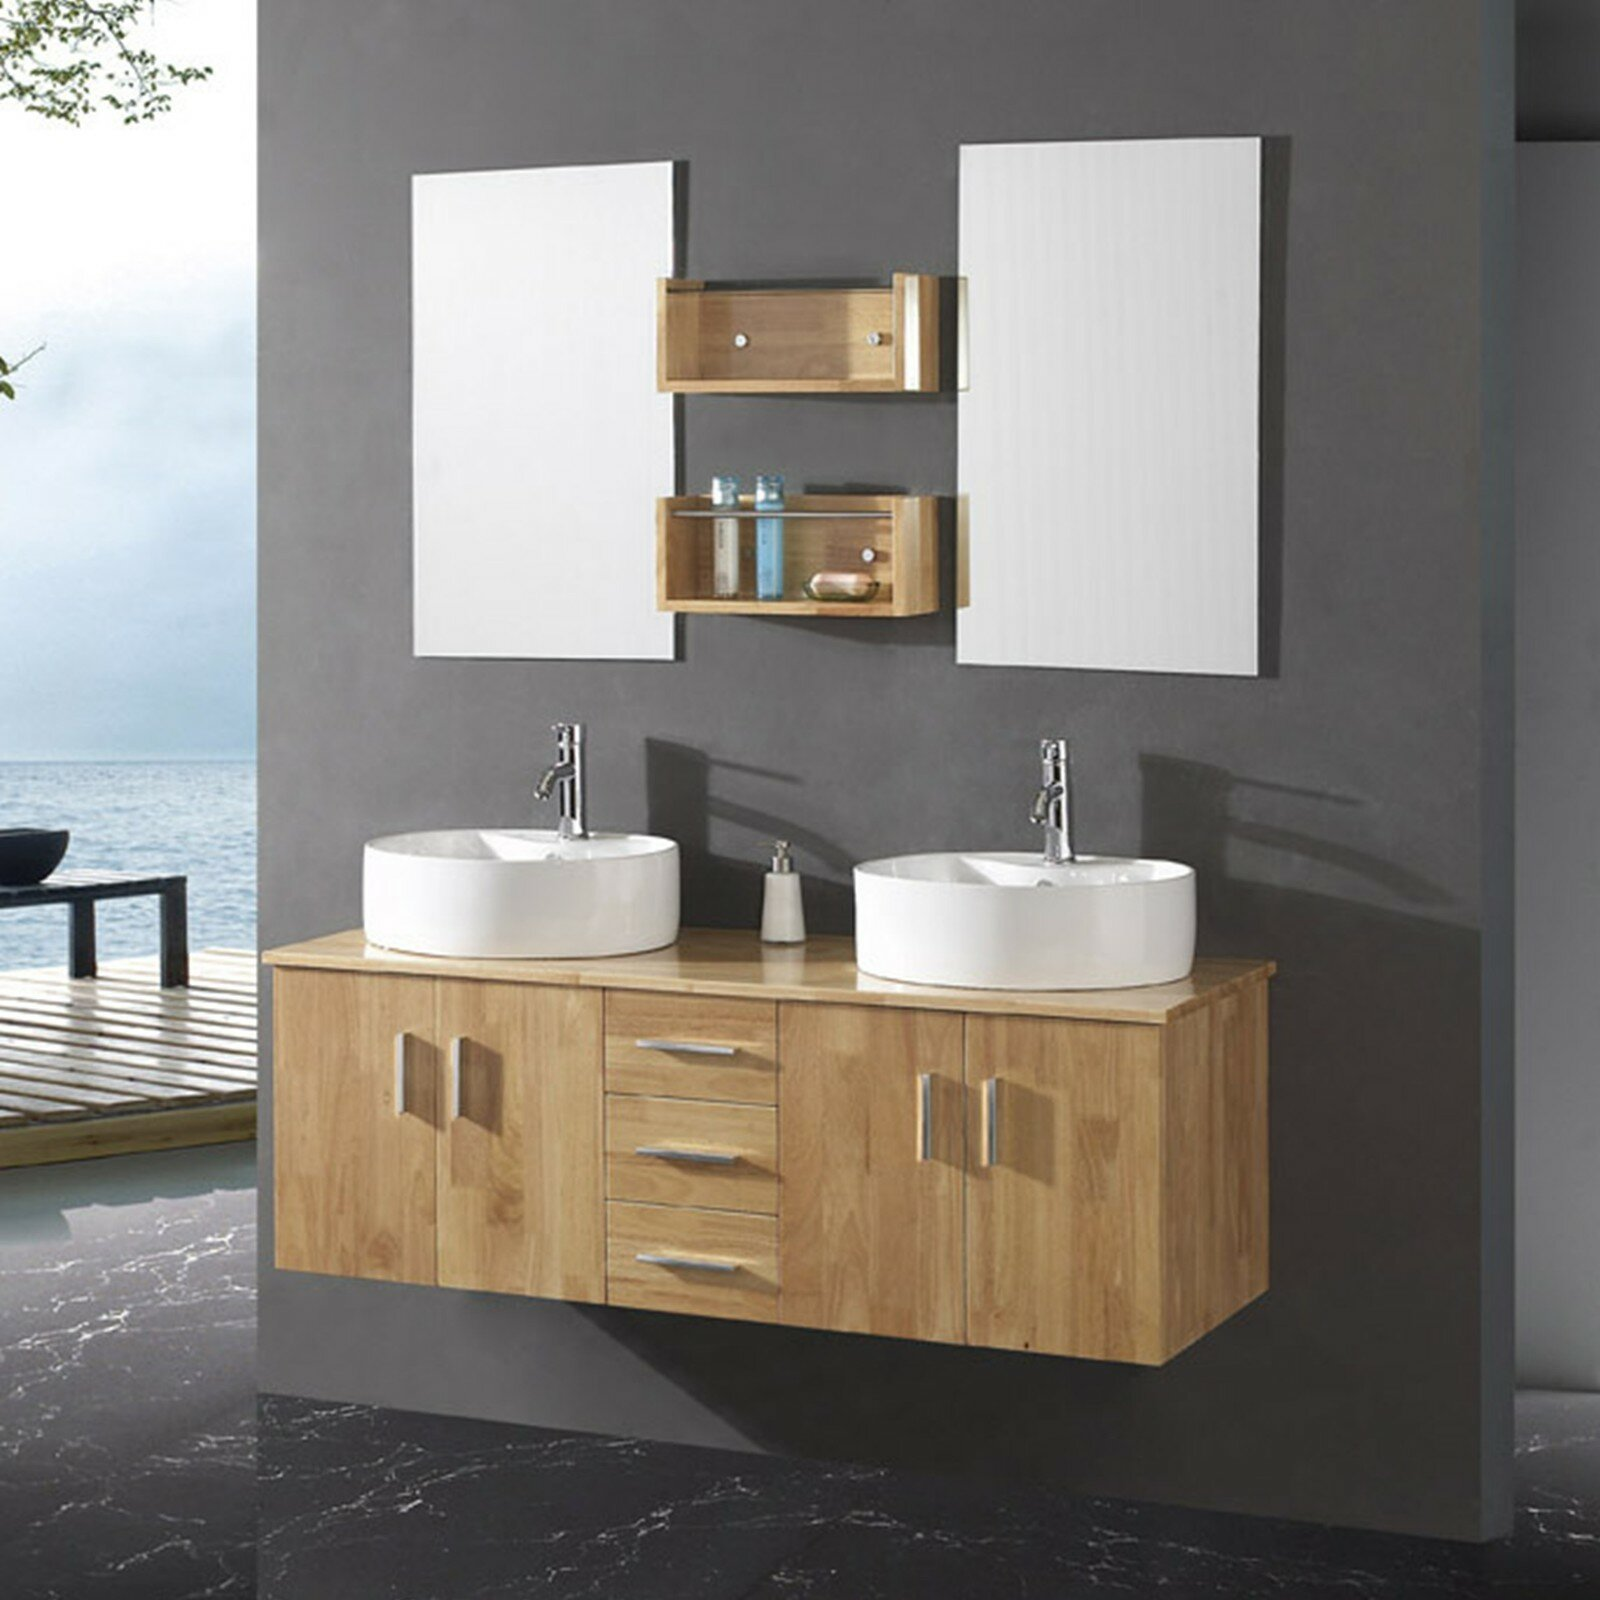 Wood Vanities For Bathrooms bathroom: pottery barn vanity for bathroom cabinet design ideas